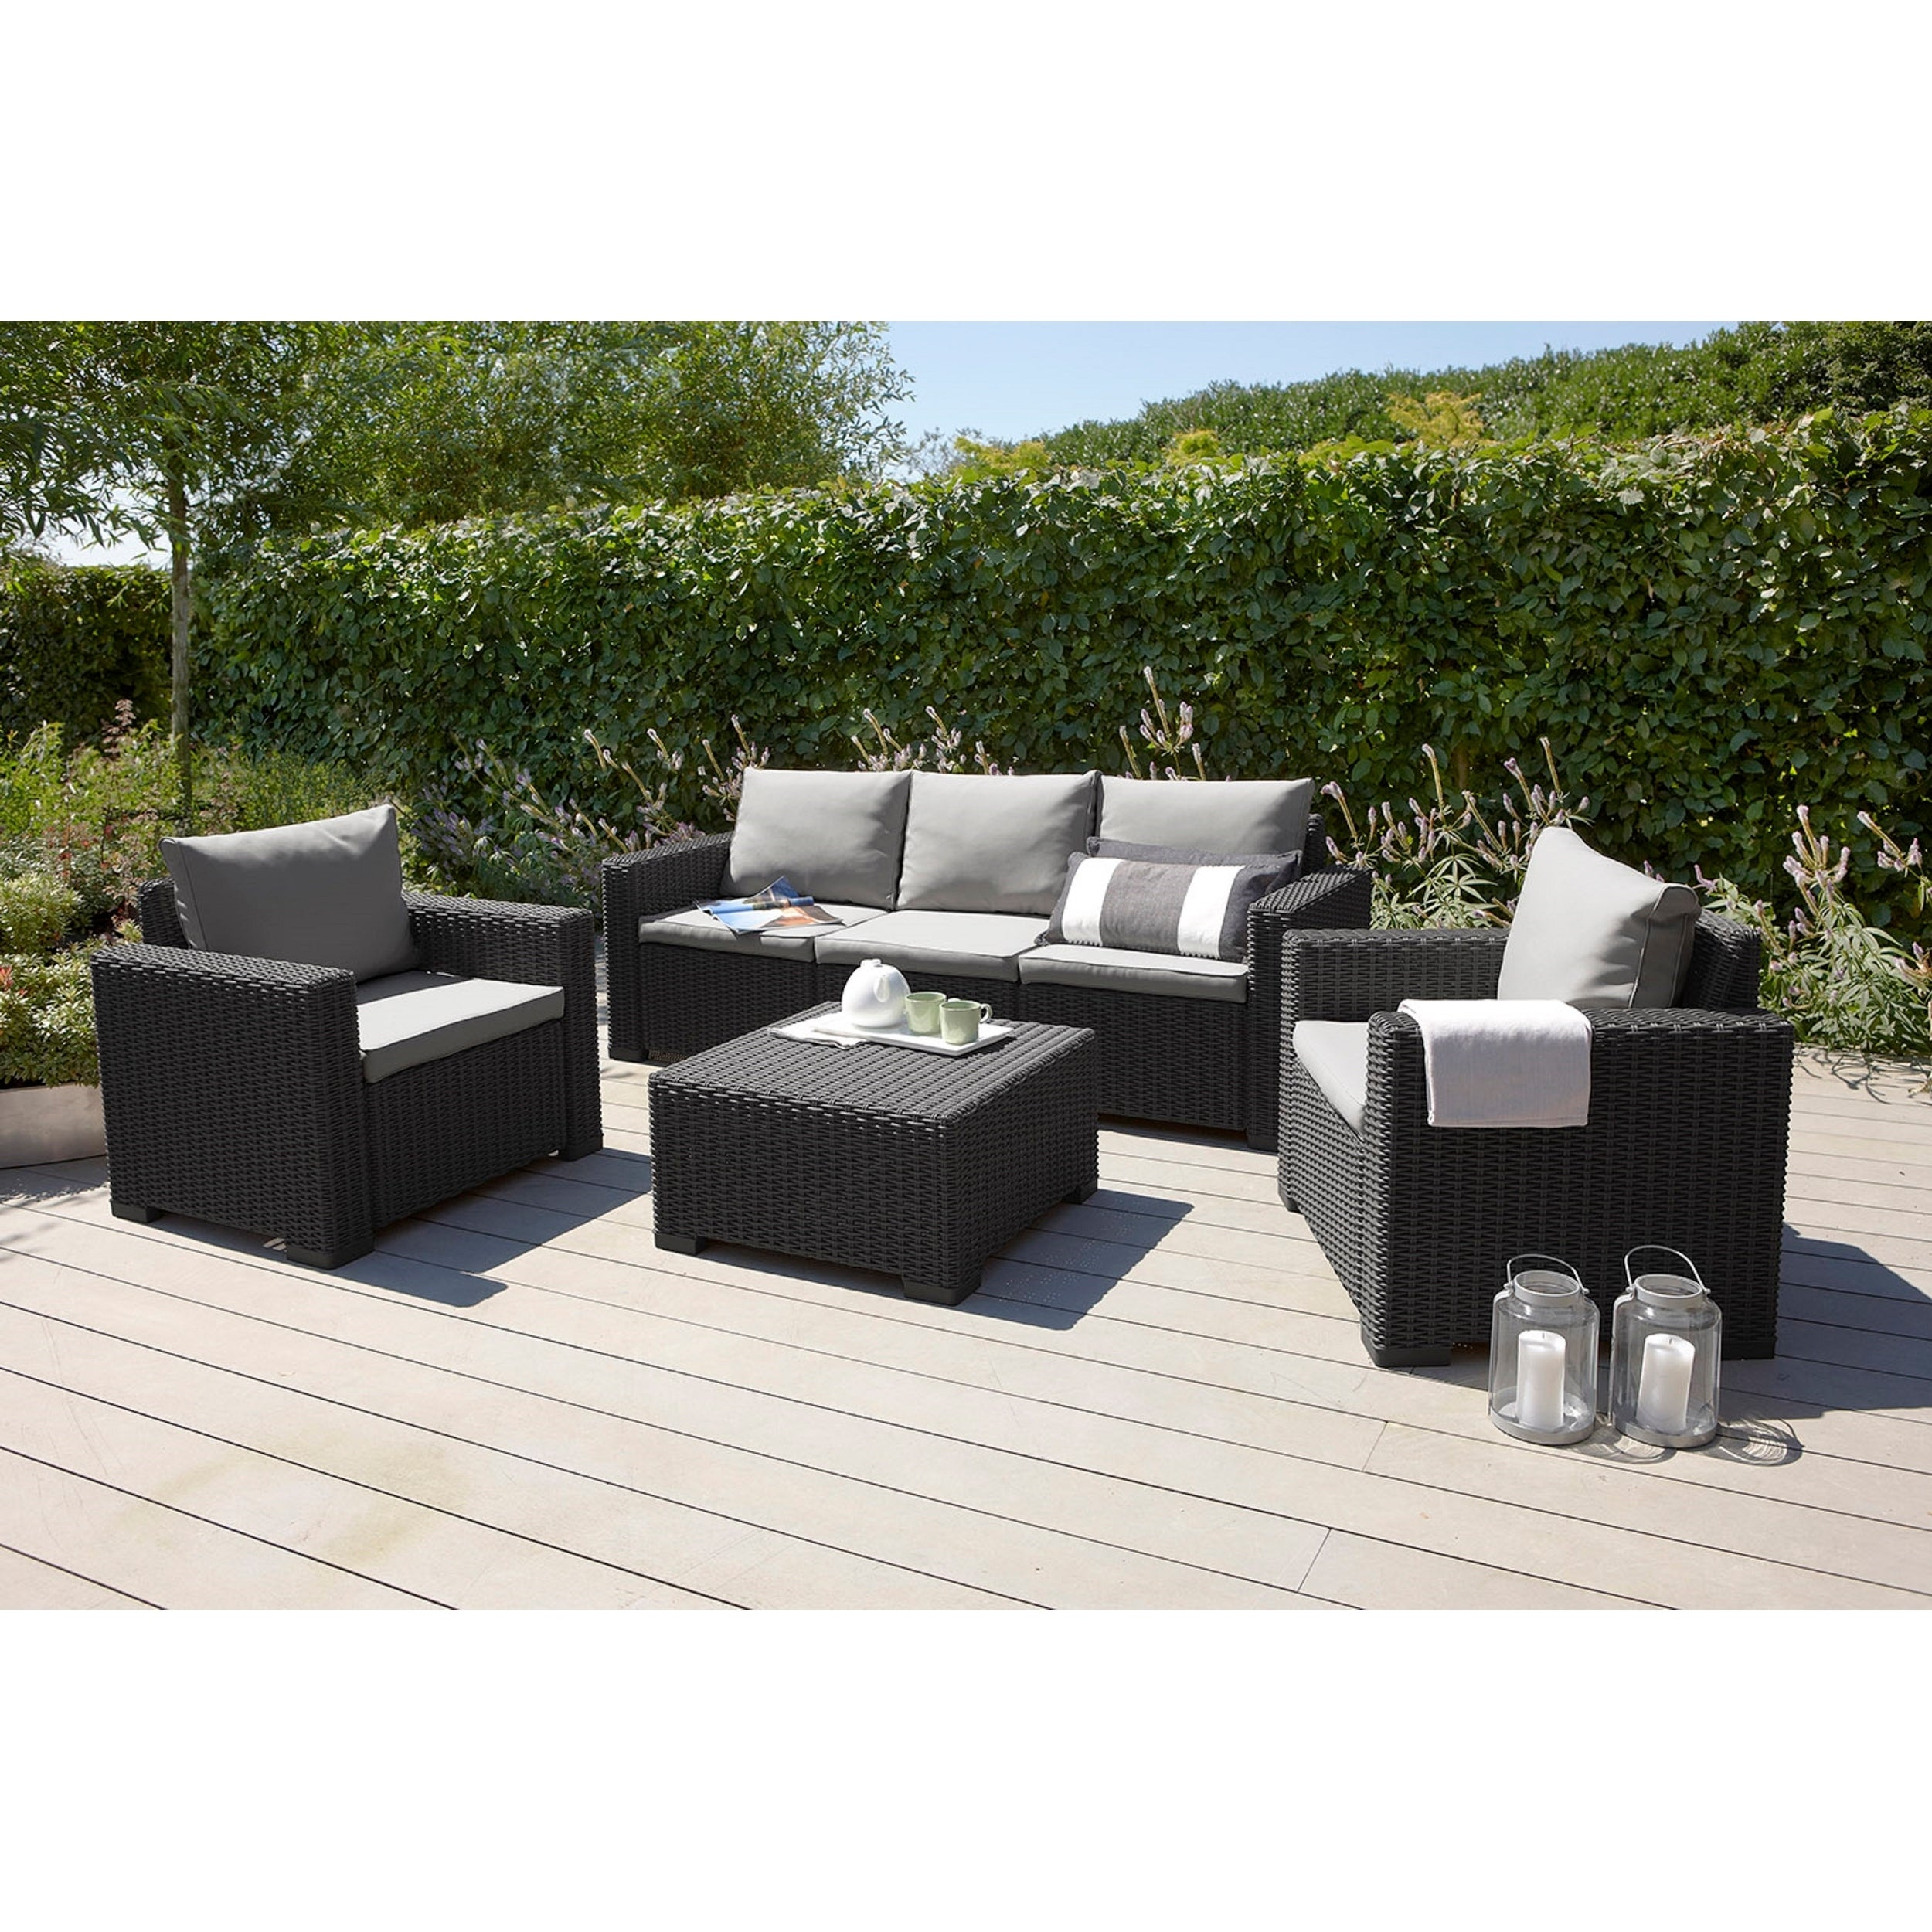 Keter California All Weather Resin Outdoor Patio Coffee Table